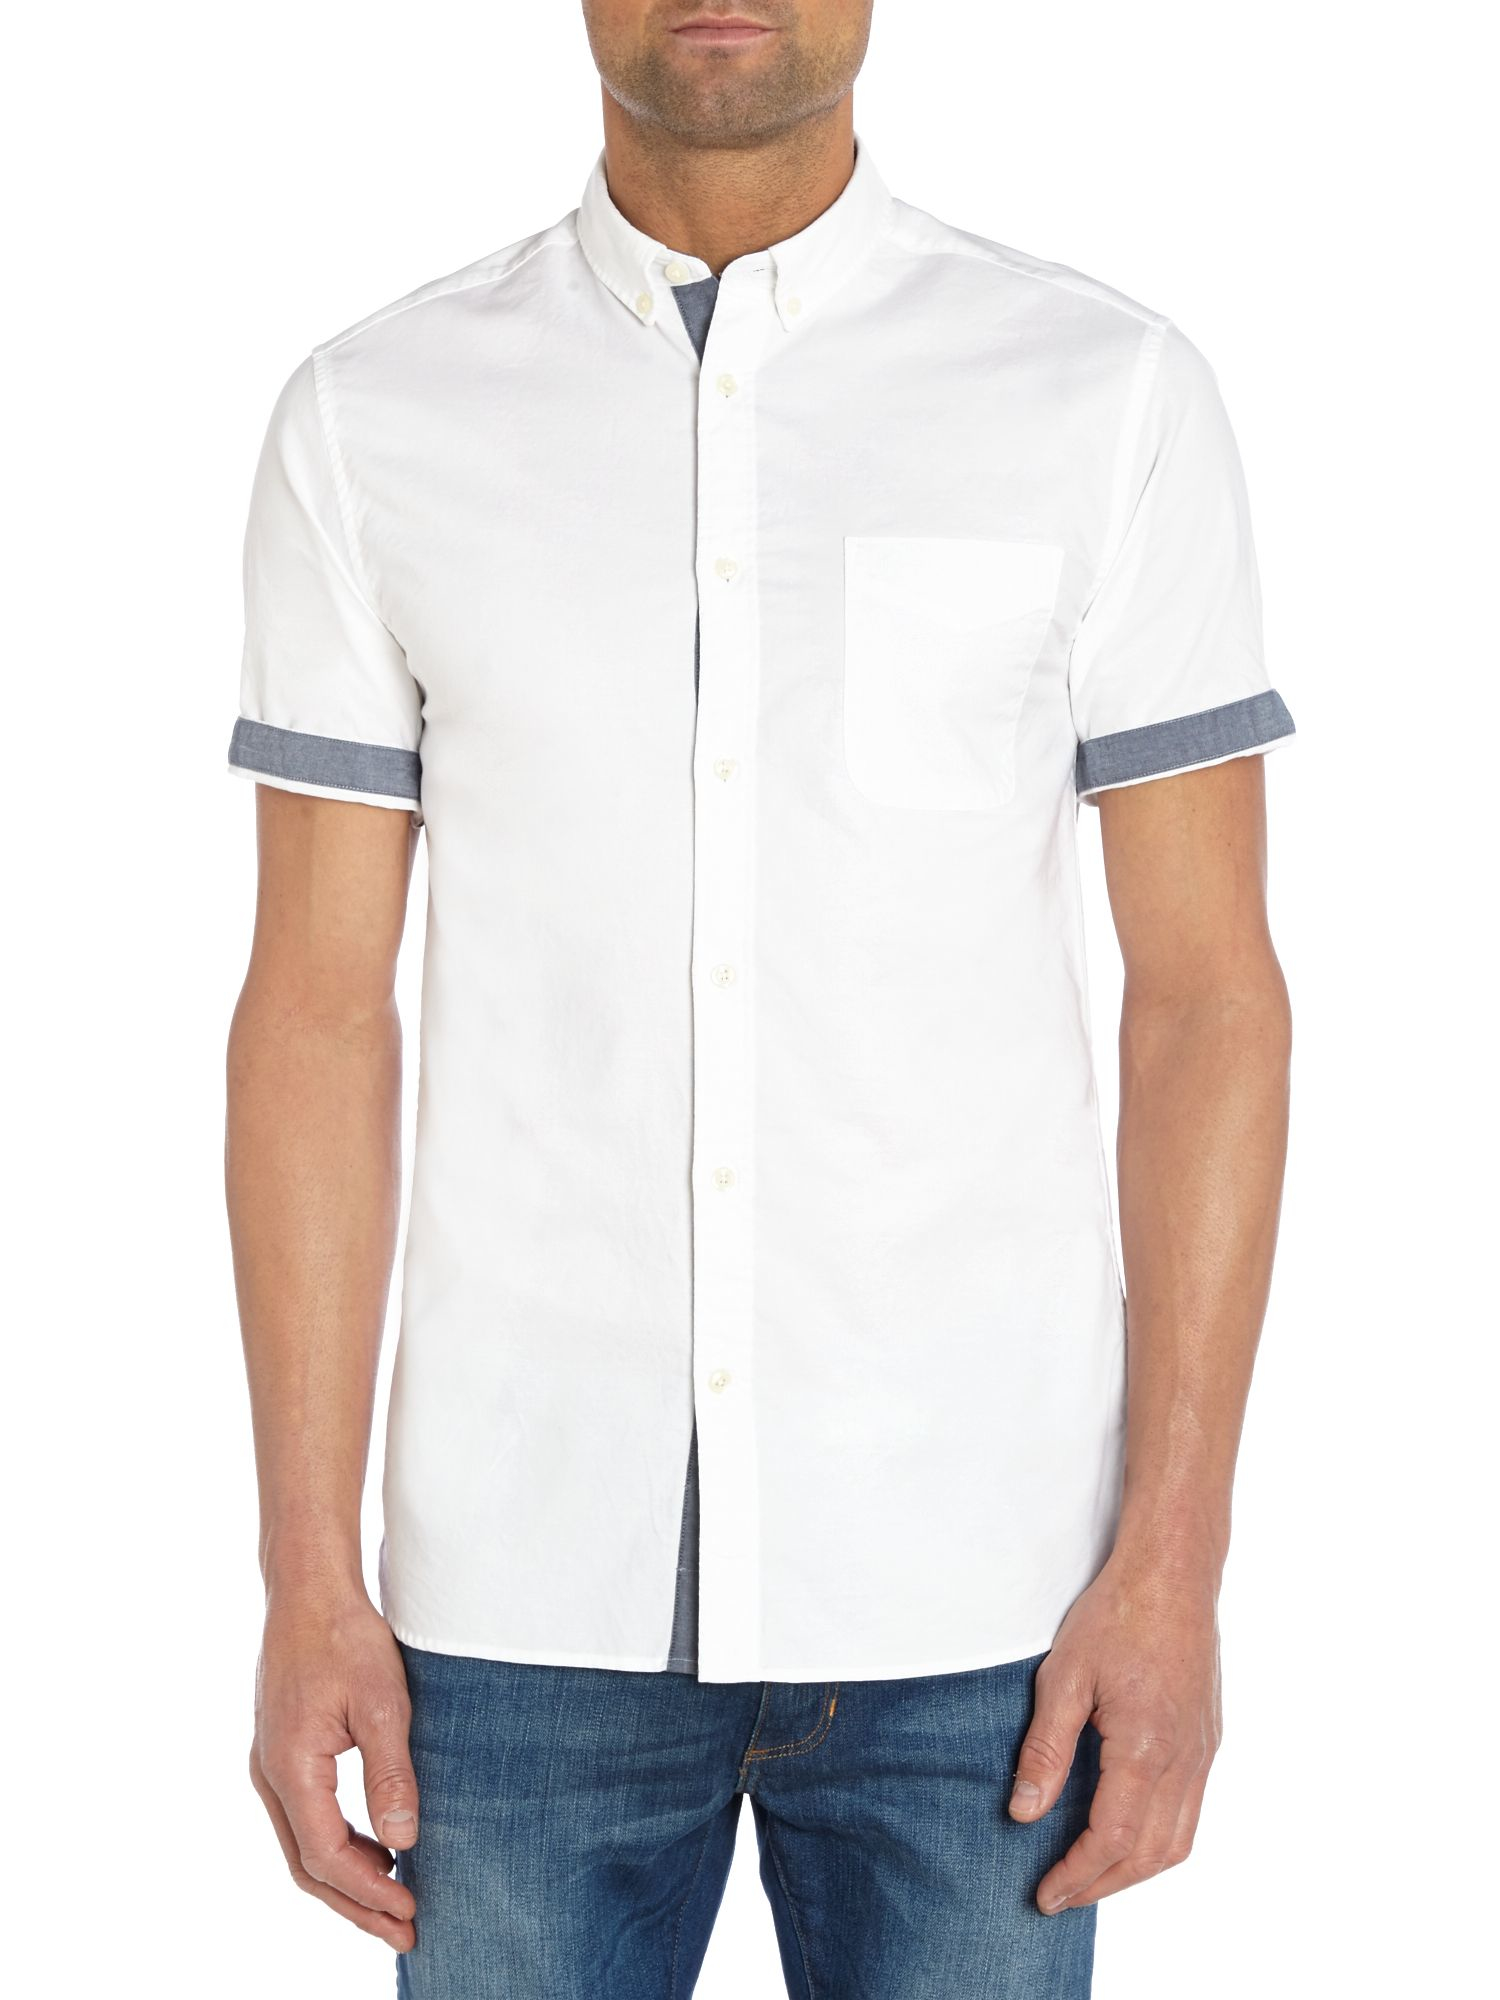 The Cotton Short-Sleeve Slim Fit Shirt Cotton poplin is light, crisp, and breathable. We chose ours for its tight weave, smooth finish, and exceptional durability.